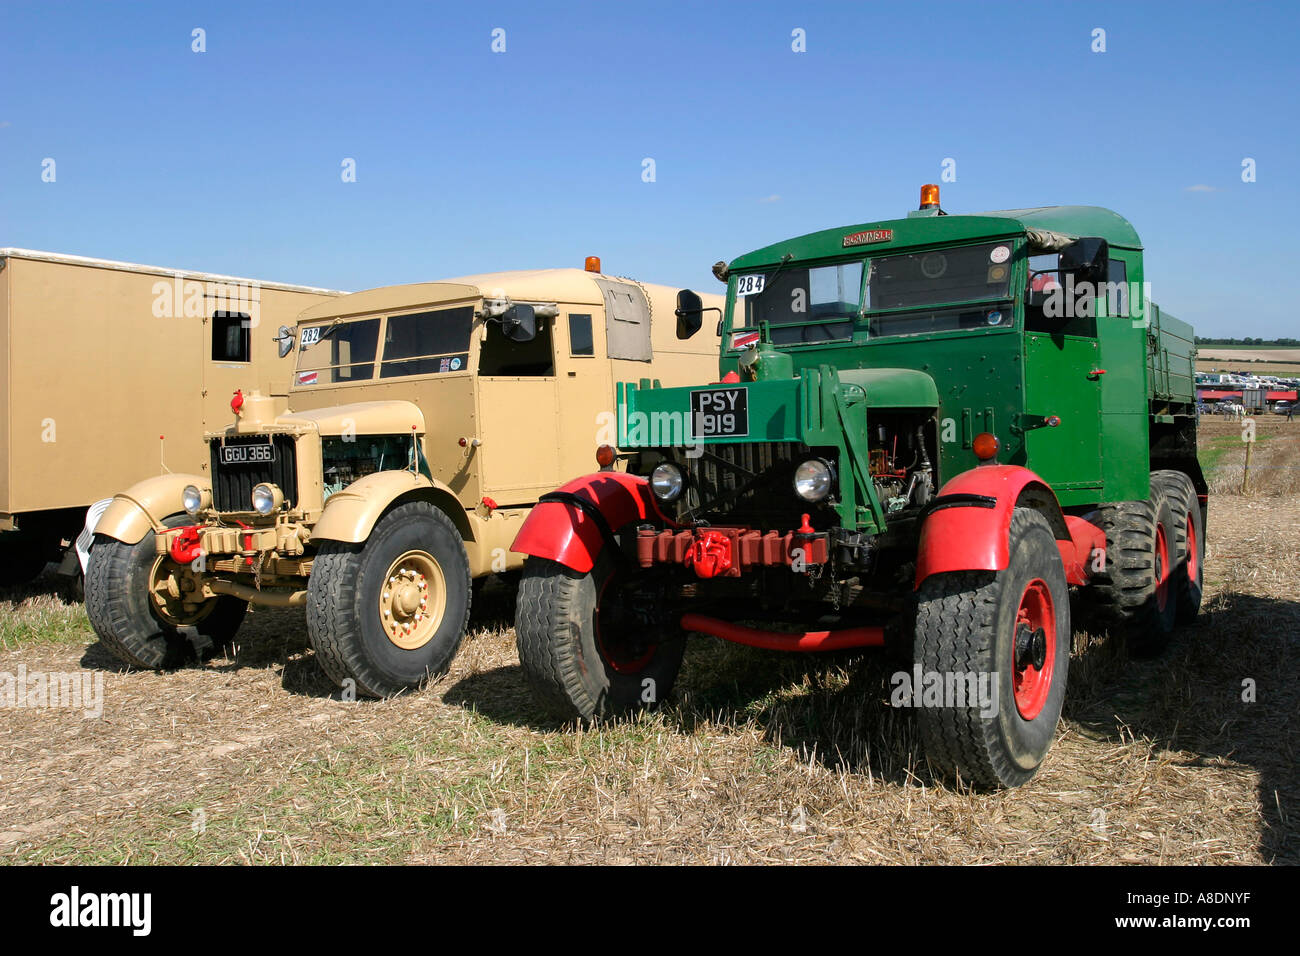 GGU366 1941 Scammell R100 Heavy Artillery Tractor and PSY919 1945 Scammell SC/2s display at the Dorset Steam Fair, England, UK. - Stock Image